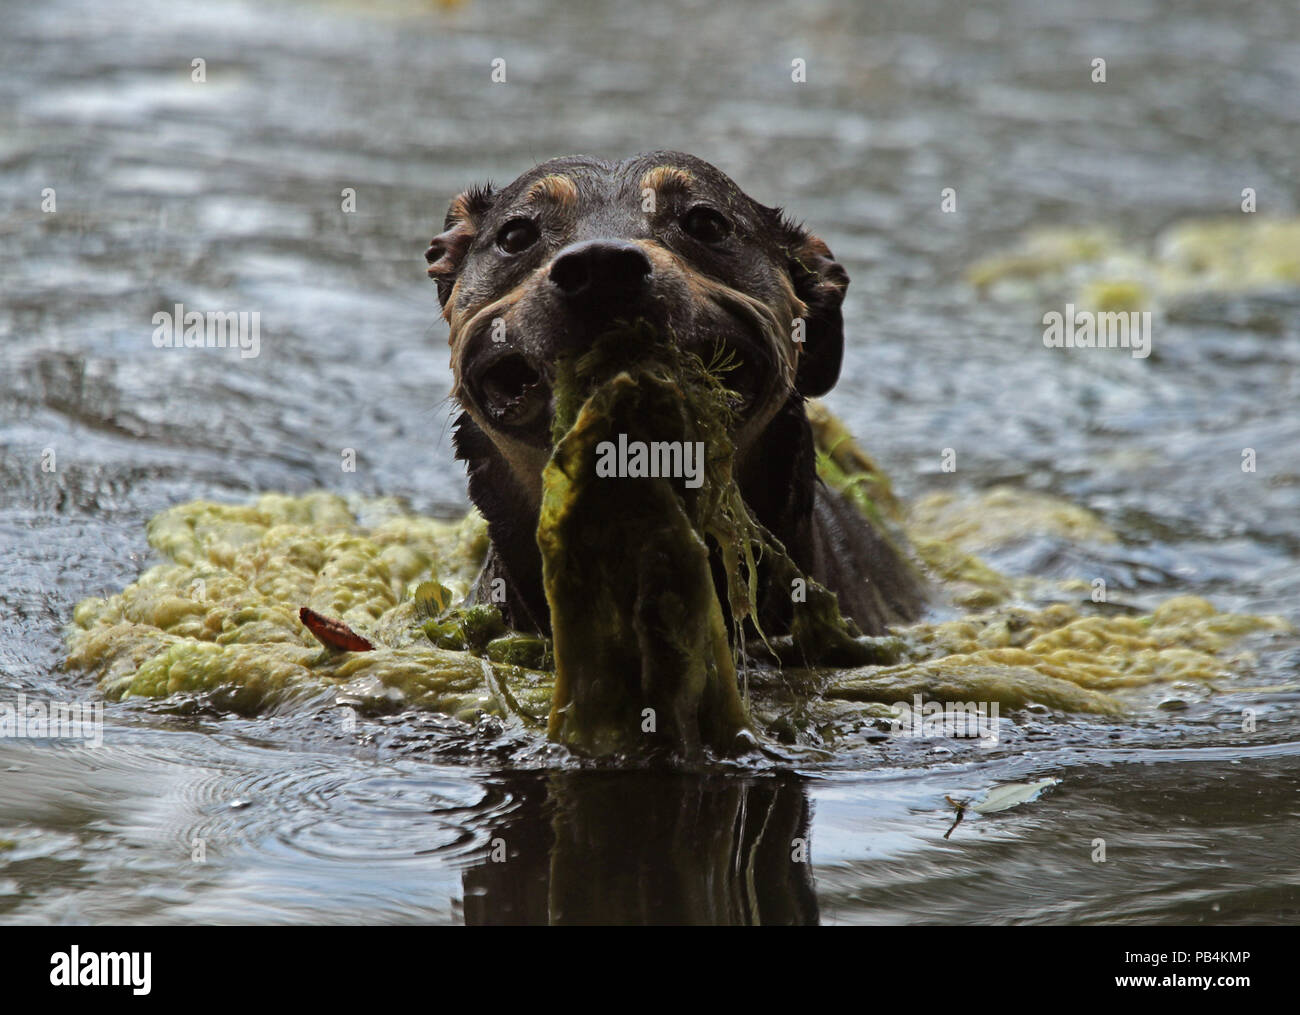 Skollie, a seven-year-old Staffy Cross Labrador, swims with algae in his mouth in a pond on Hampstead Heath, London. - Stock Image